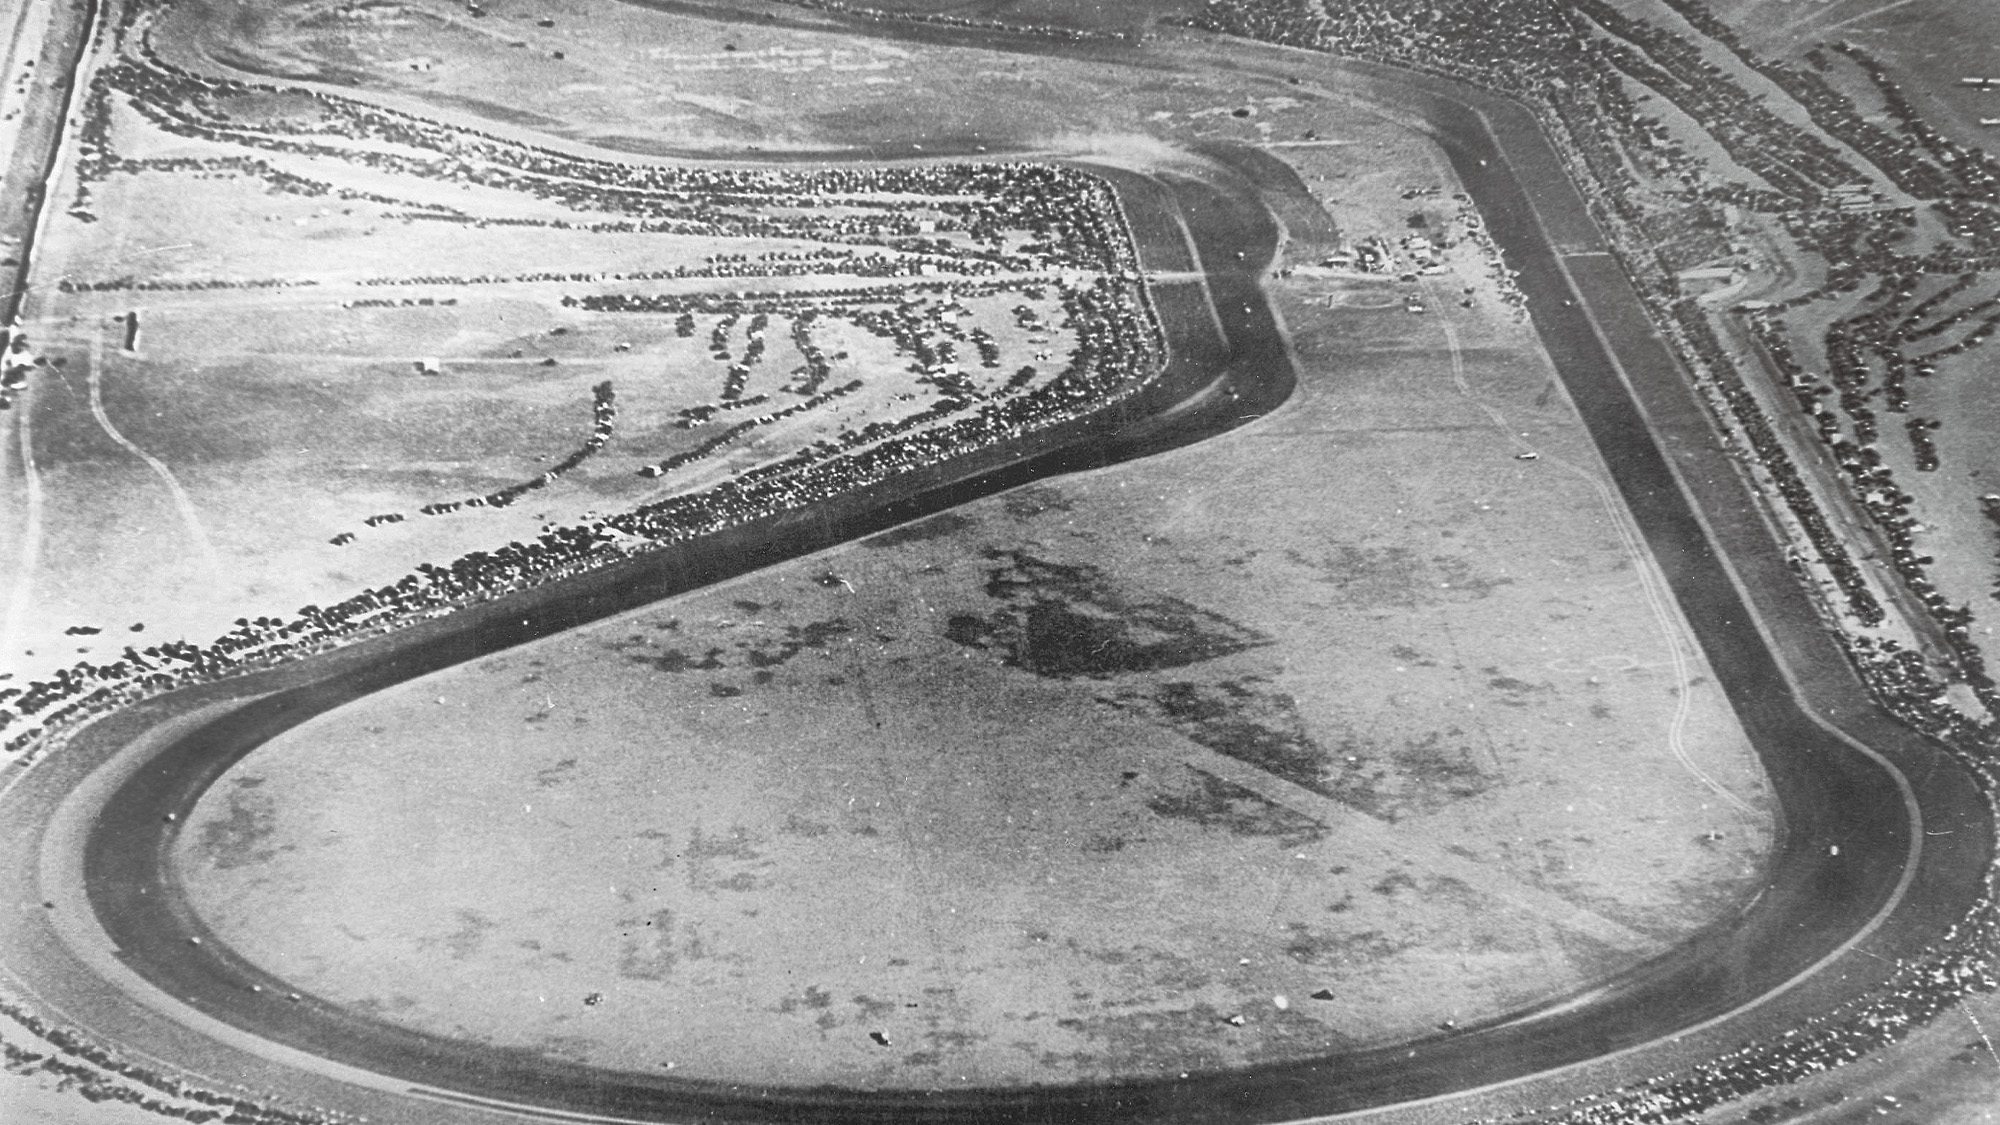 Mines Field track in Los Angeles